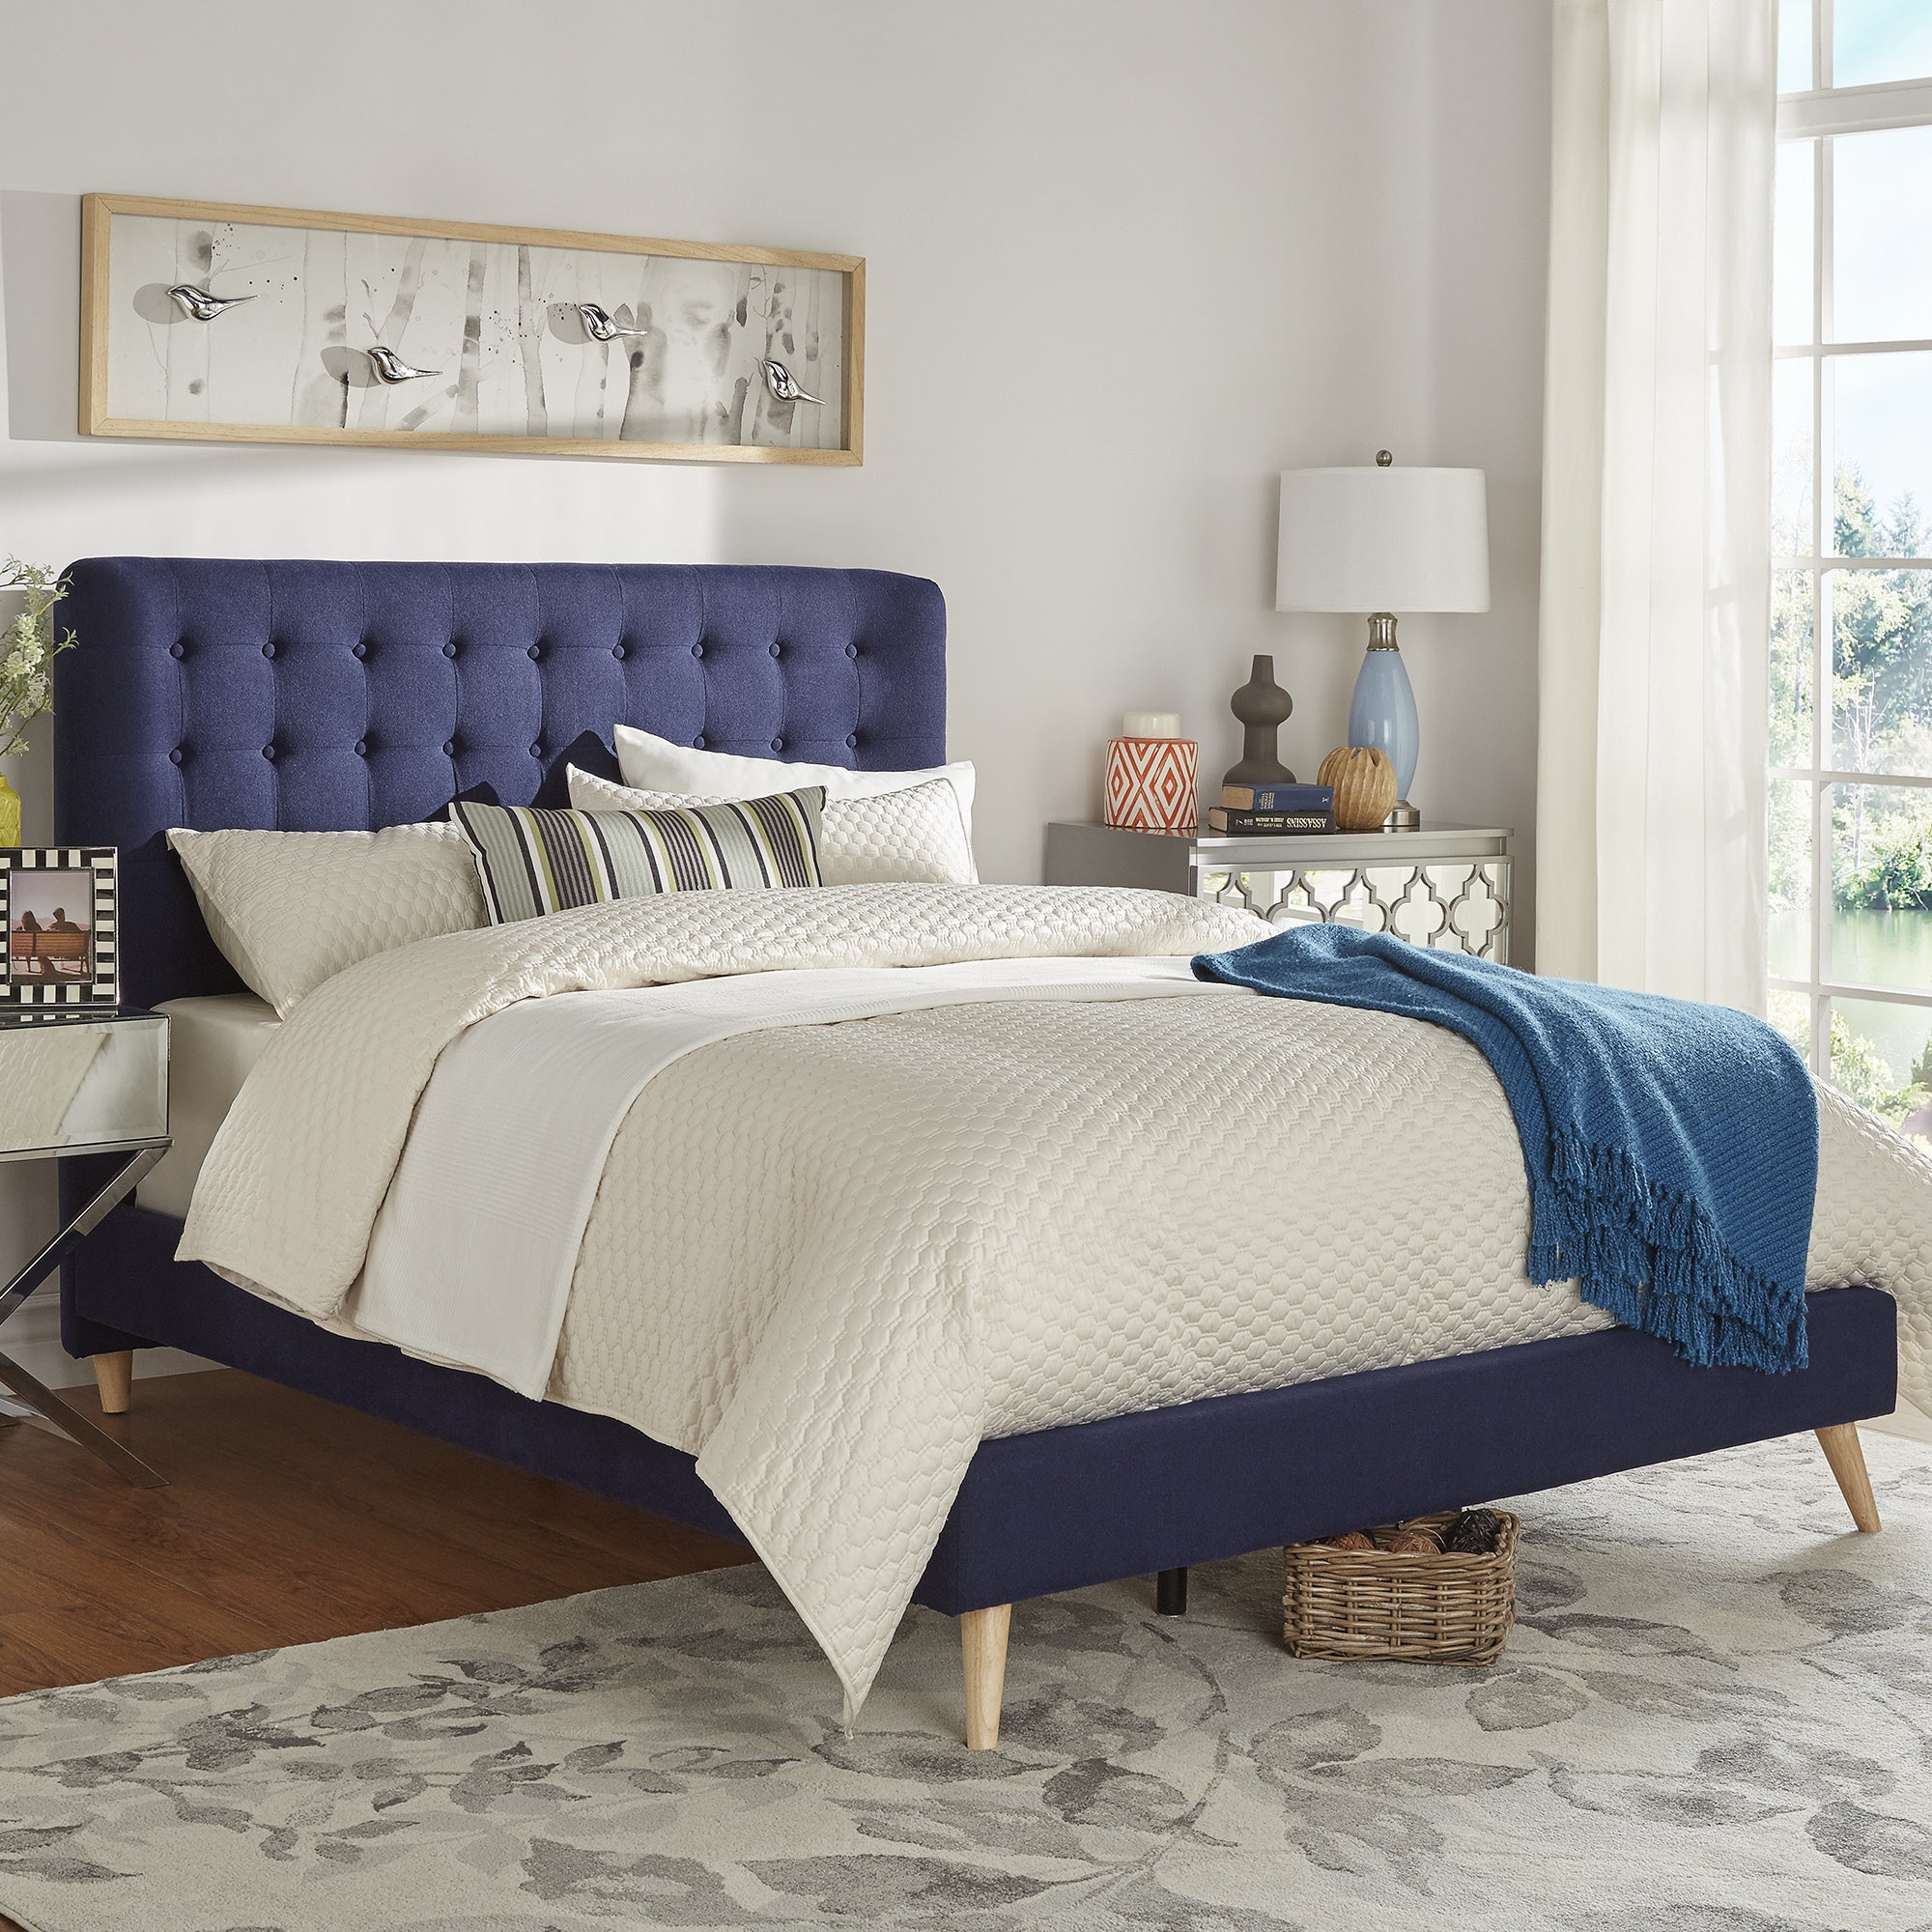 Niels Danish Modern Tufted Fabric Upholstered King Size Bed iNSPIRE Q  Modern - Free Shipping Today - Overstock.com - 20144595